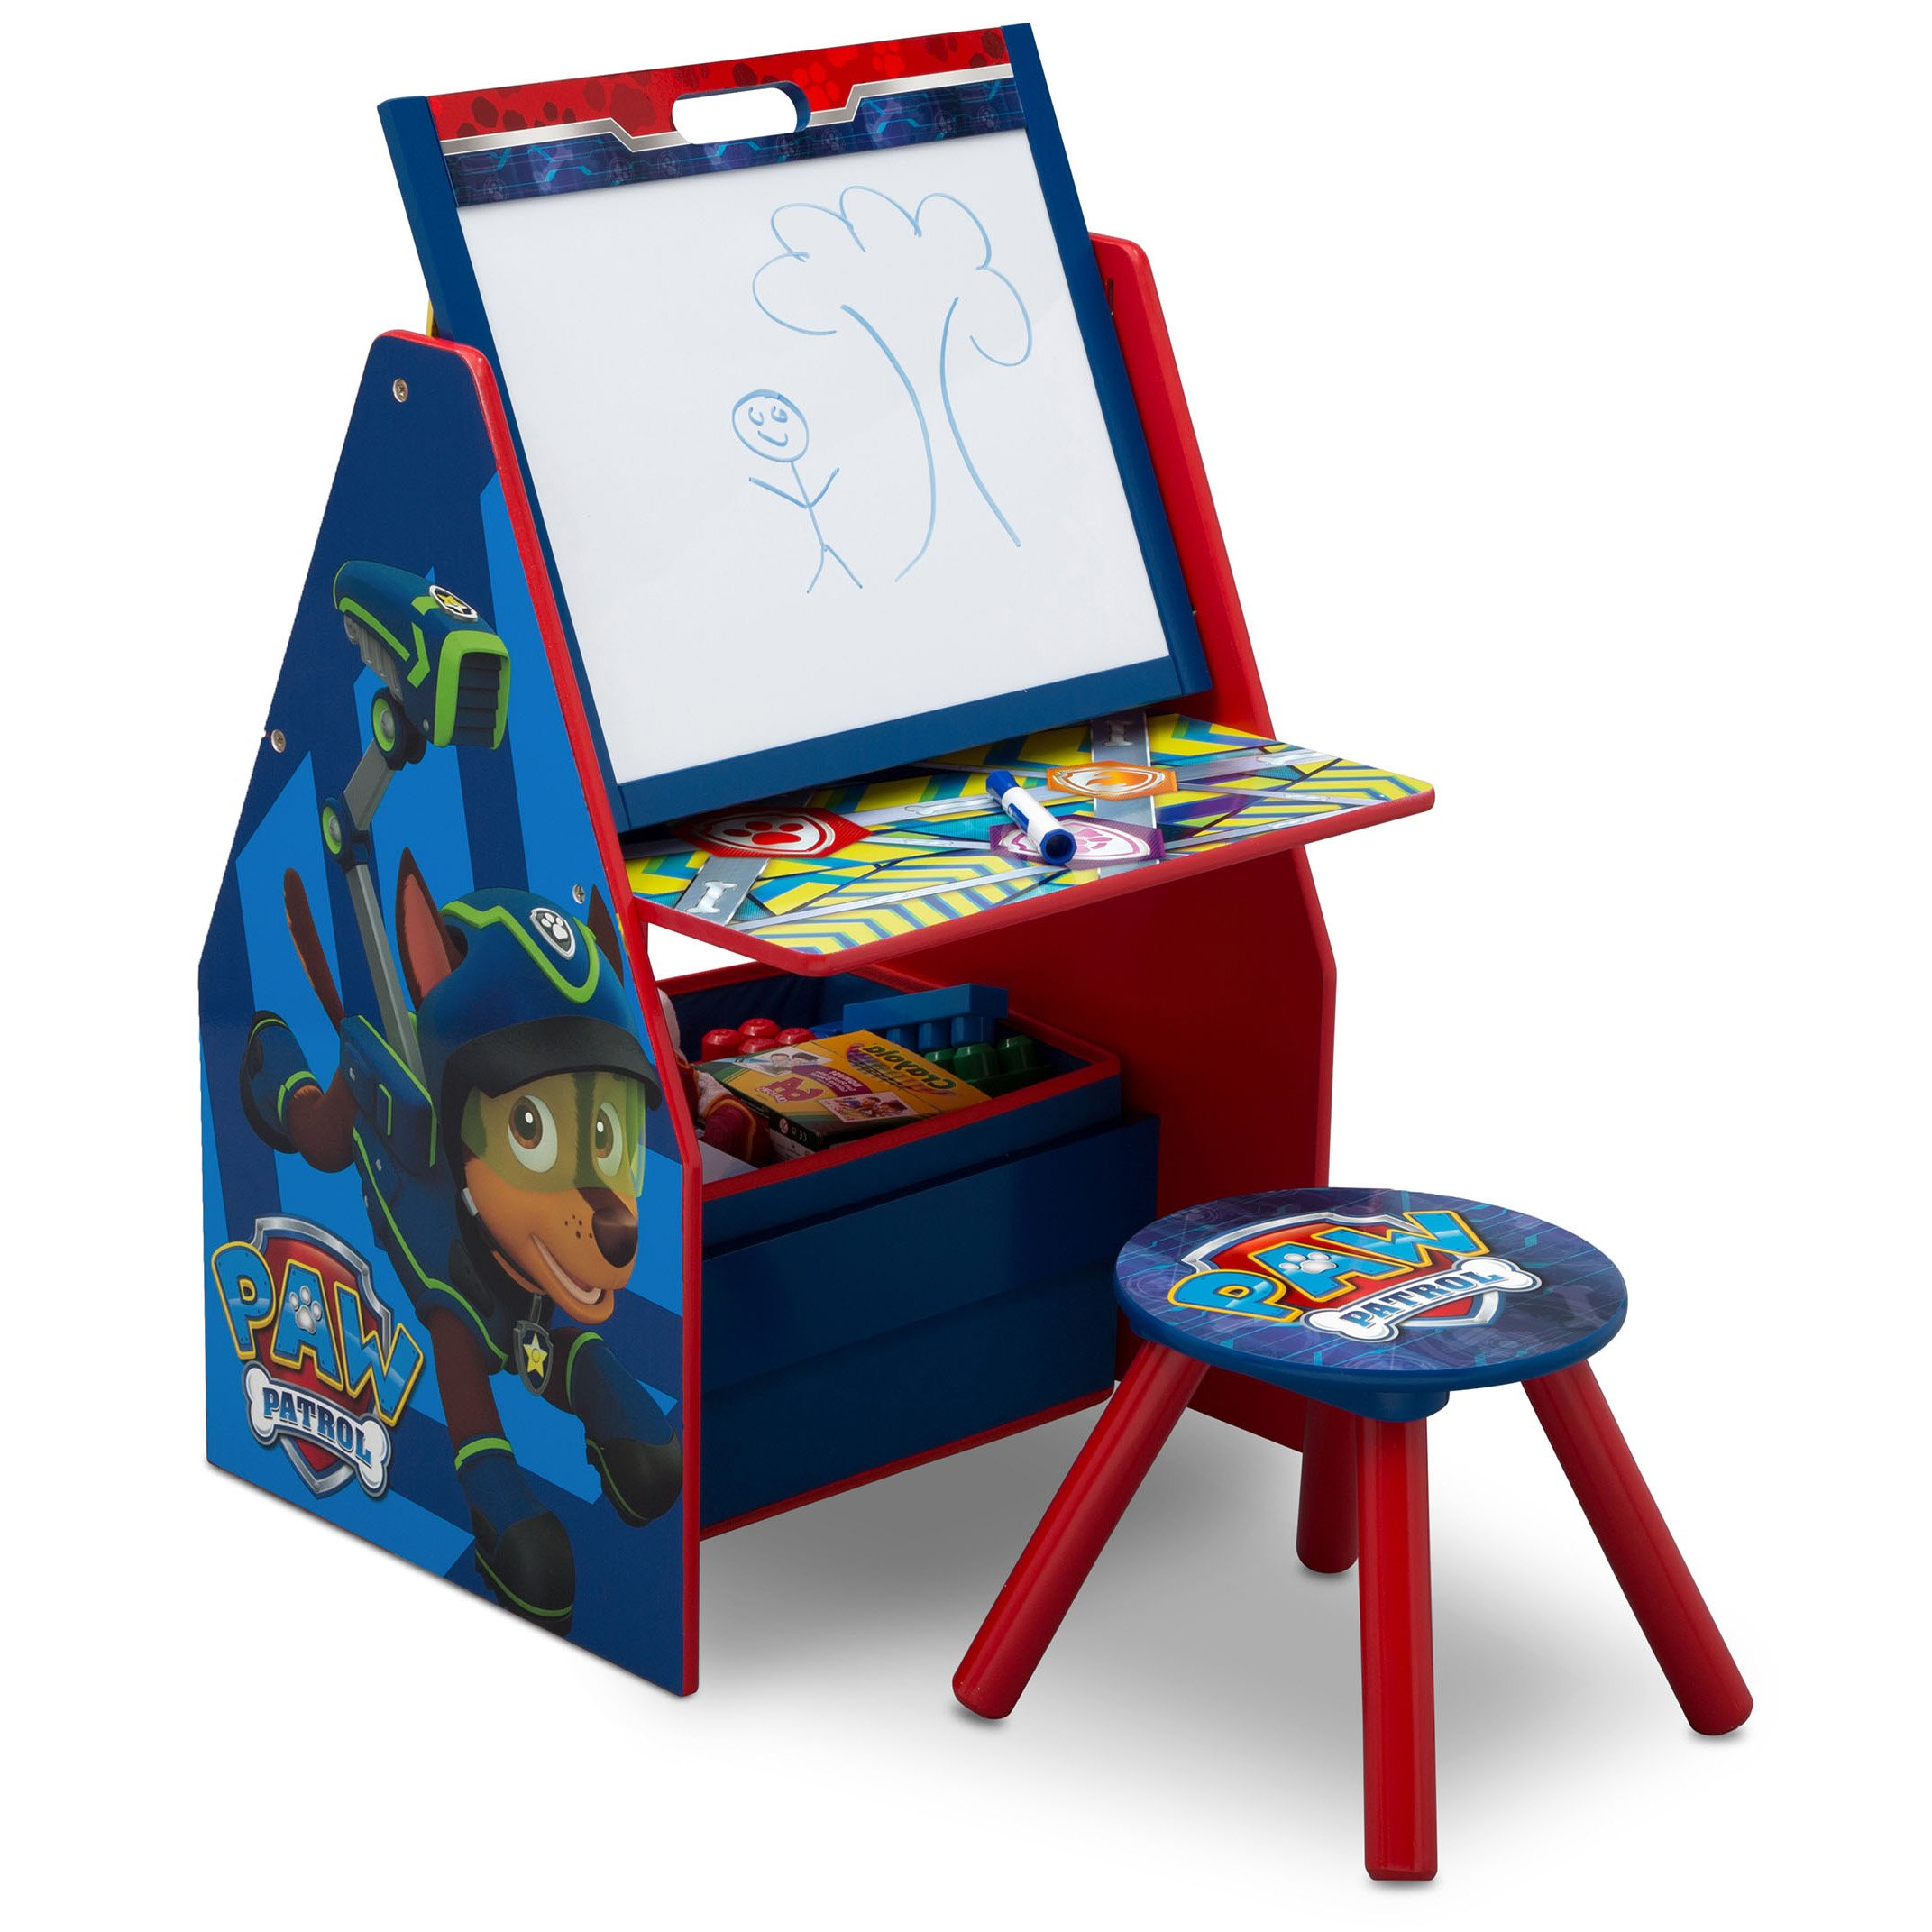 Delta Children Deluxe Kids Art Easel Desk Stool Toy Table Organizer, Nick Jr. PAW Patrol